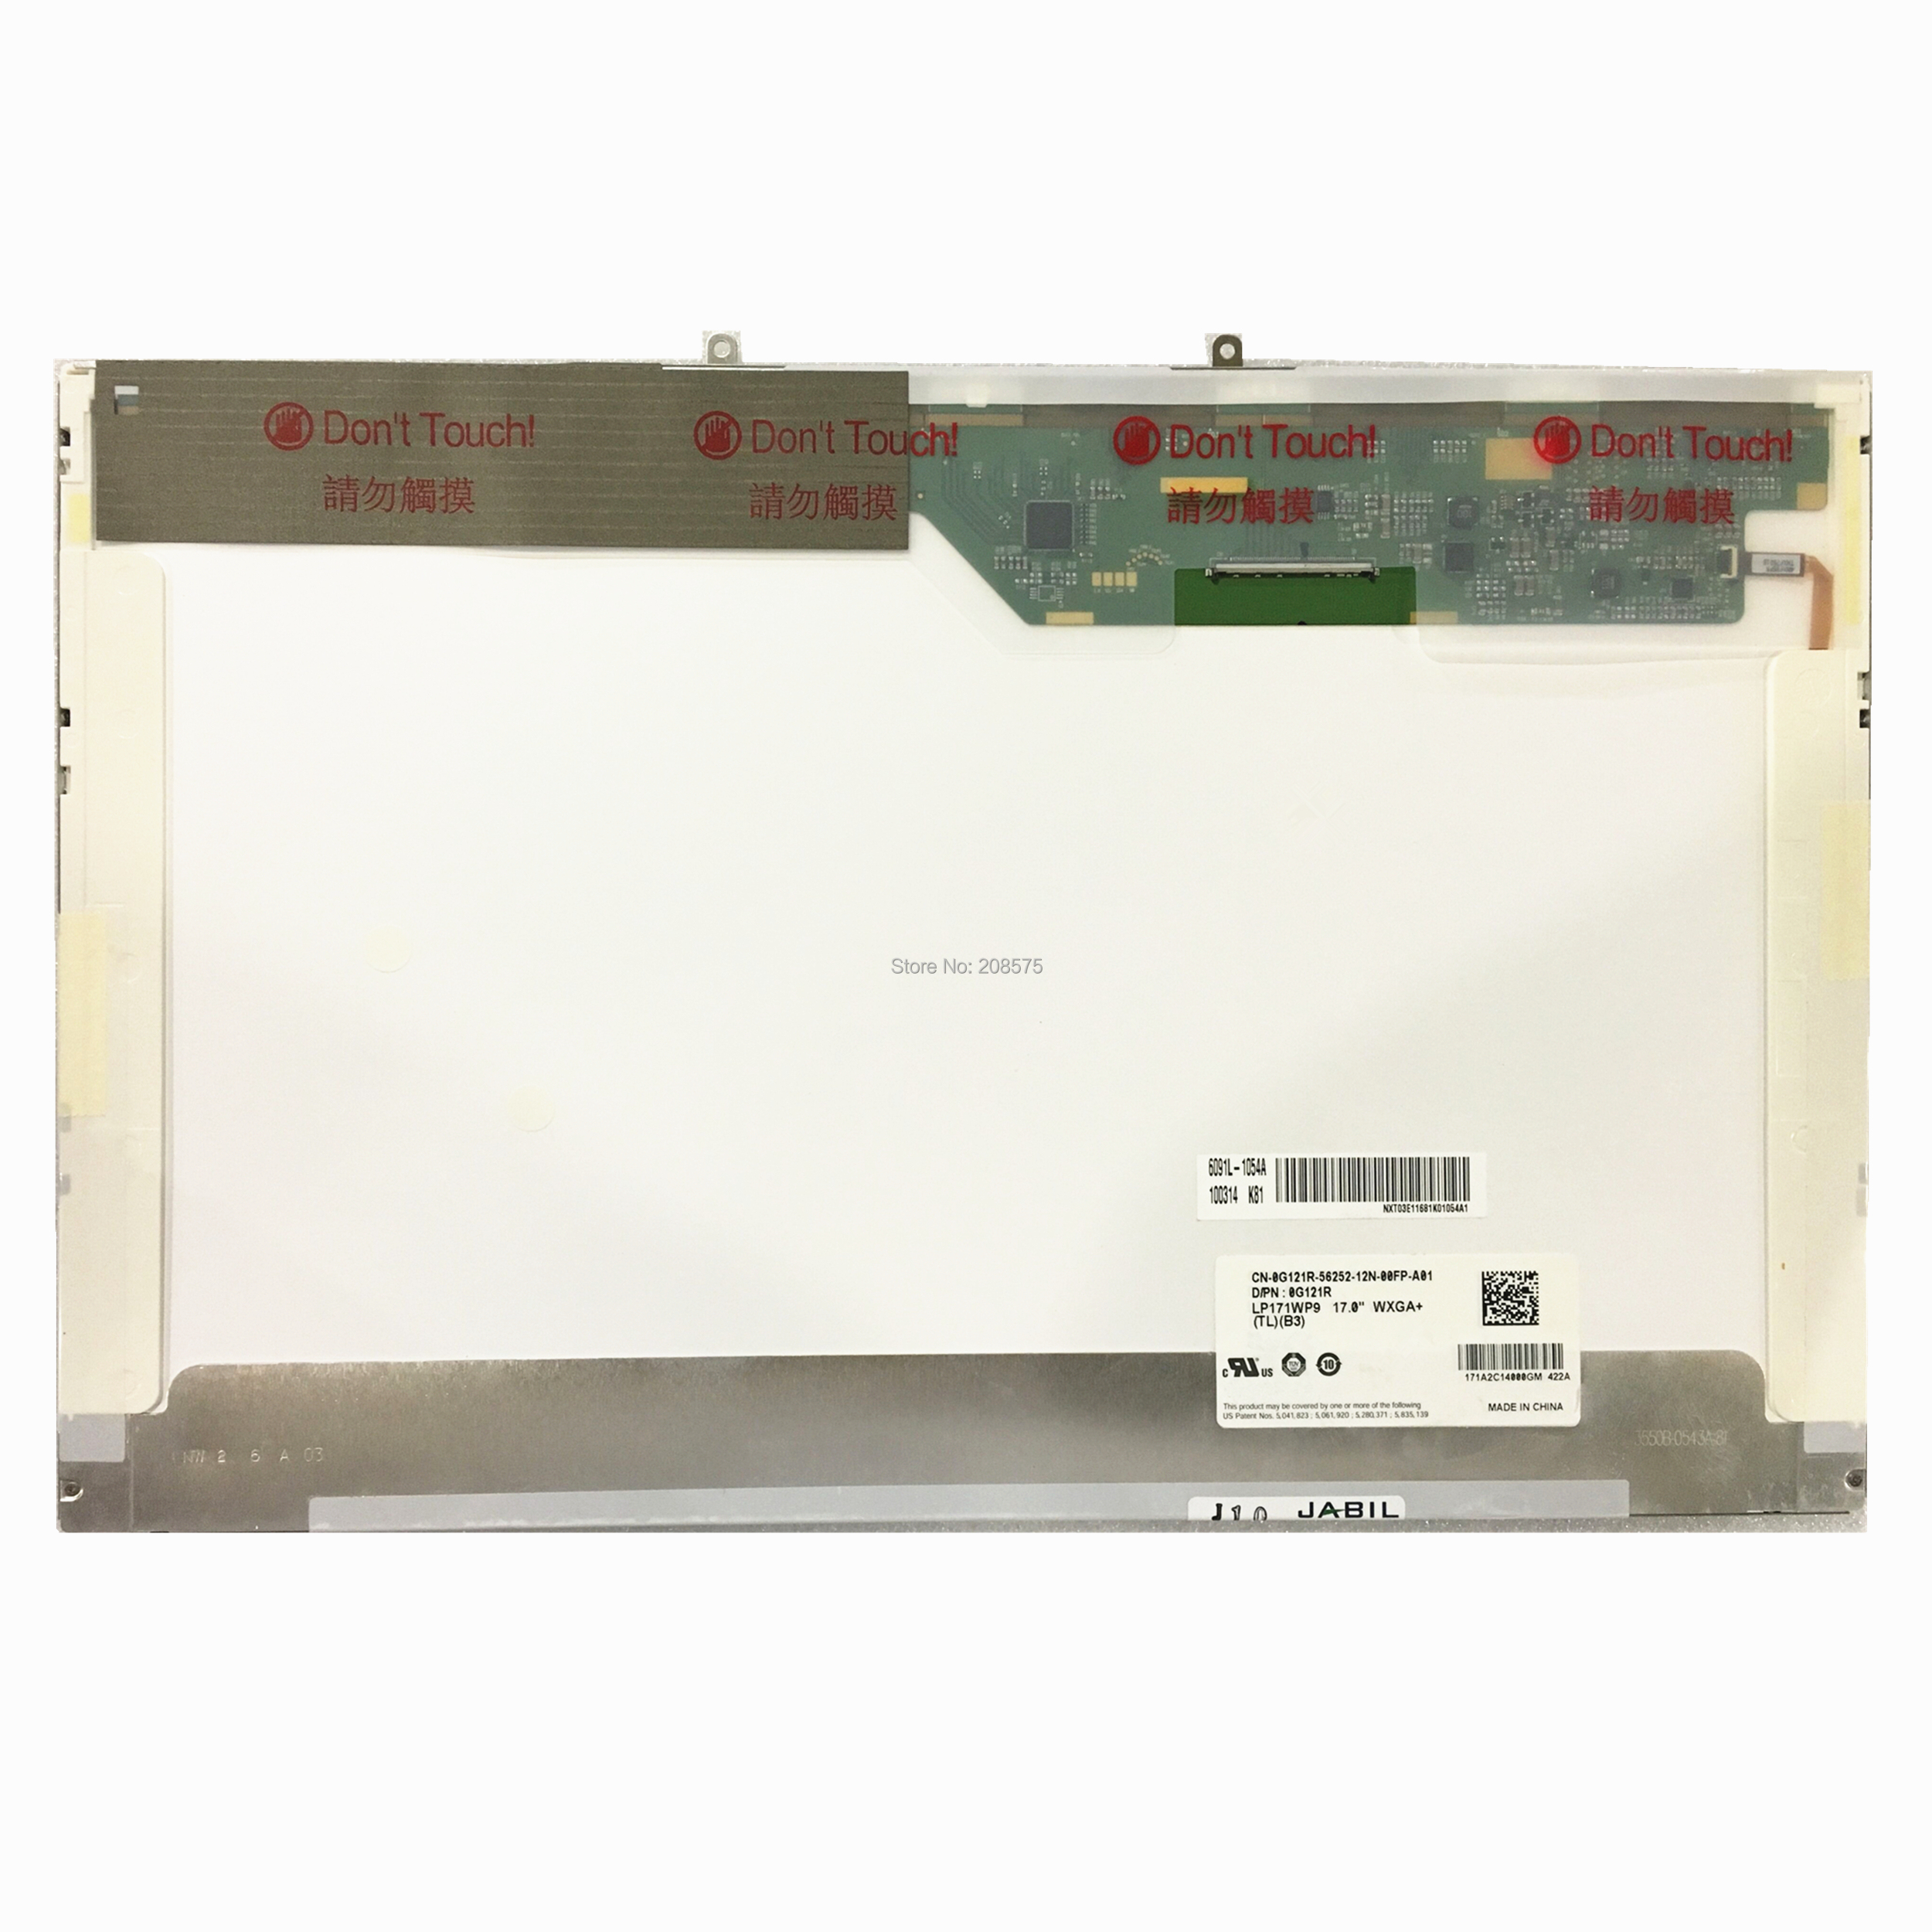 Free Shipping LP171WP9-TLB3 LP171WP9 TLB3 17.1inch original Laptop Screen Pancel 1440*900Free Shipping LP171WP9-TLB3 LP171WP9 TLB3 17.1inch original Laptop Screen Pancel 1440*900